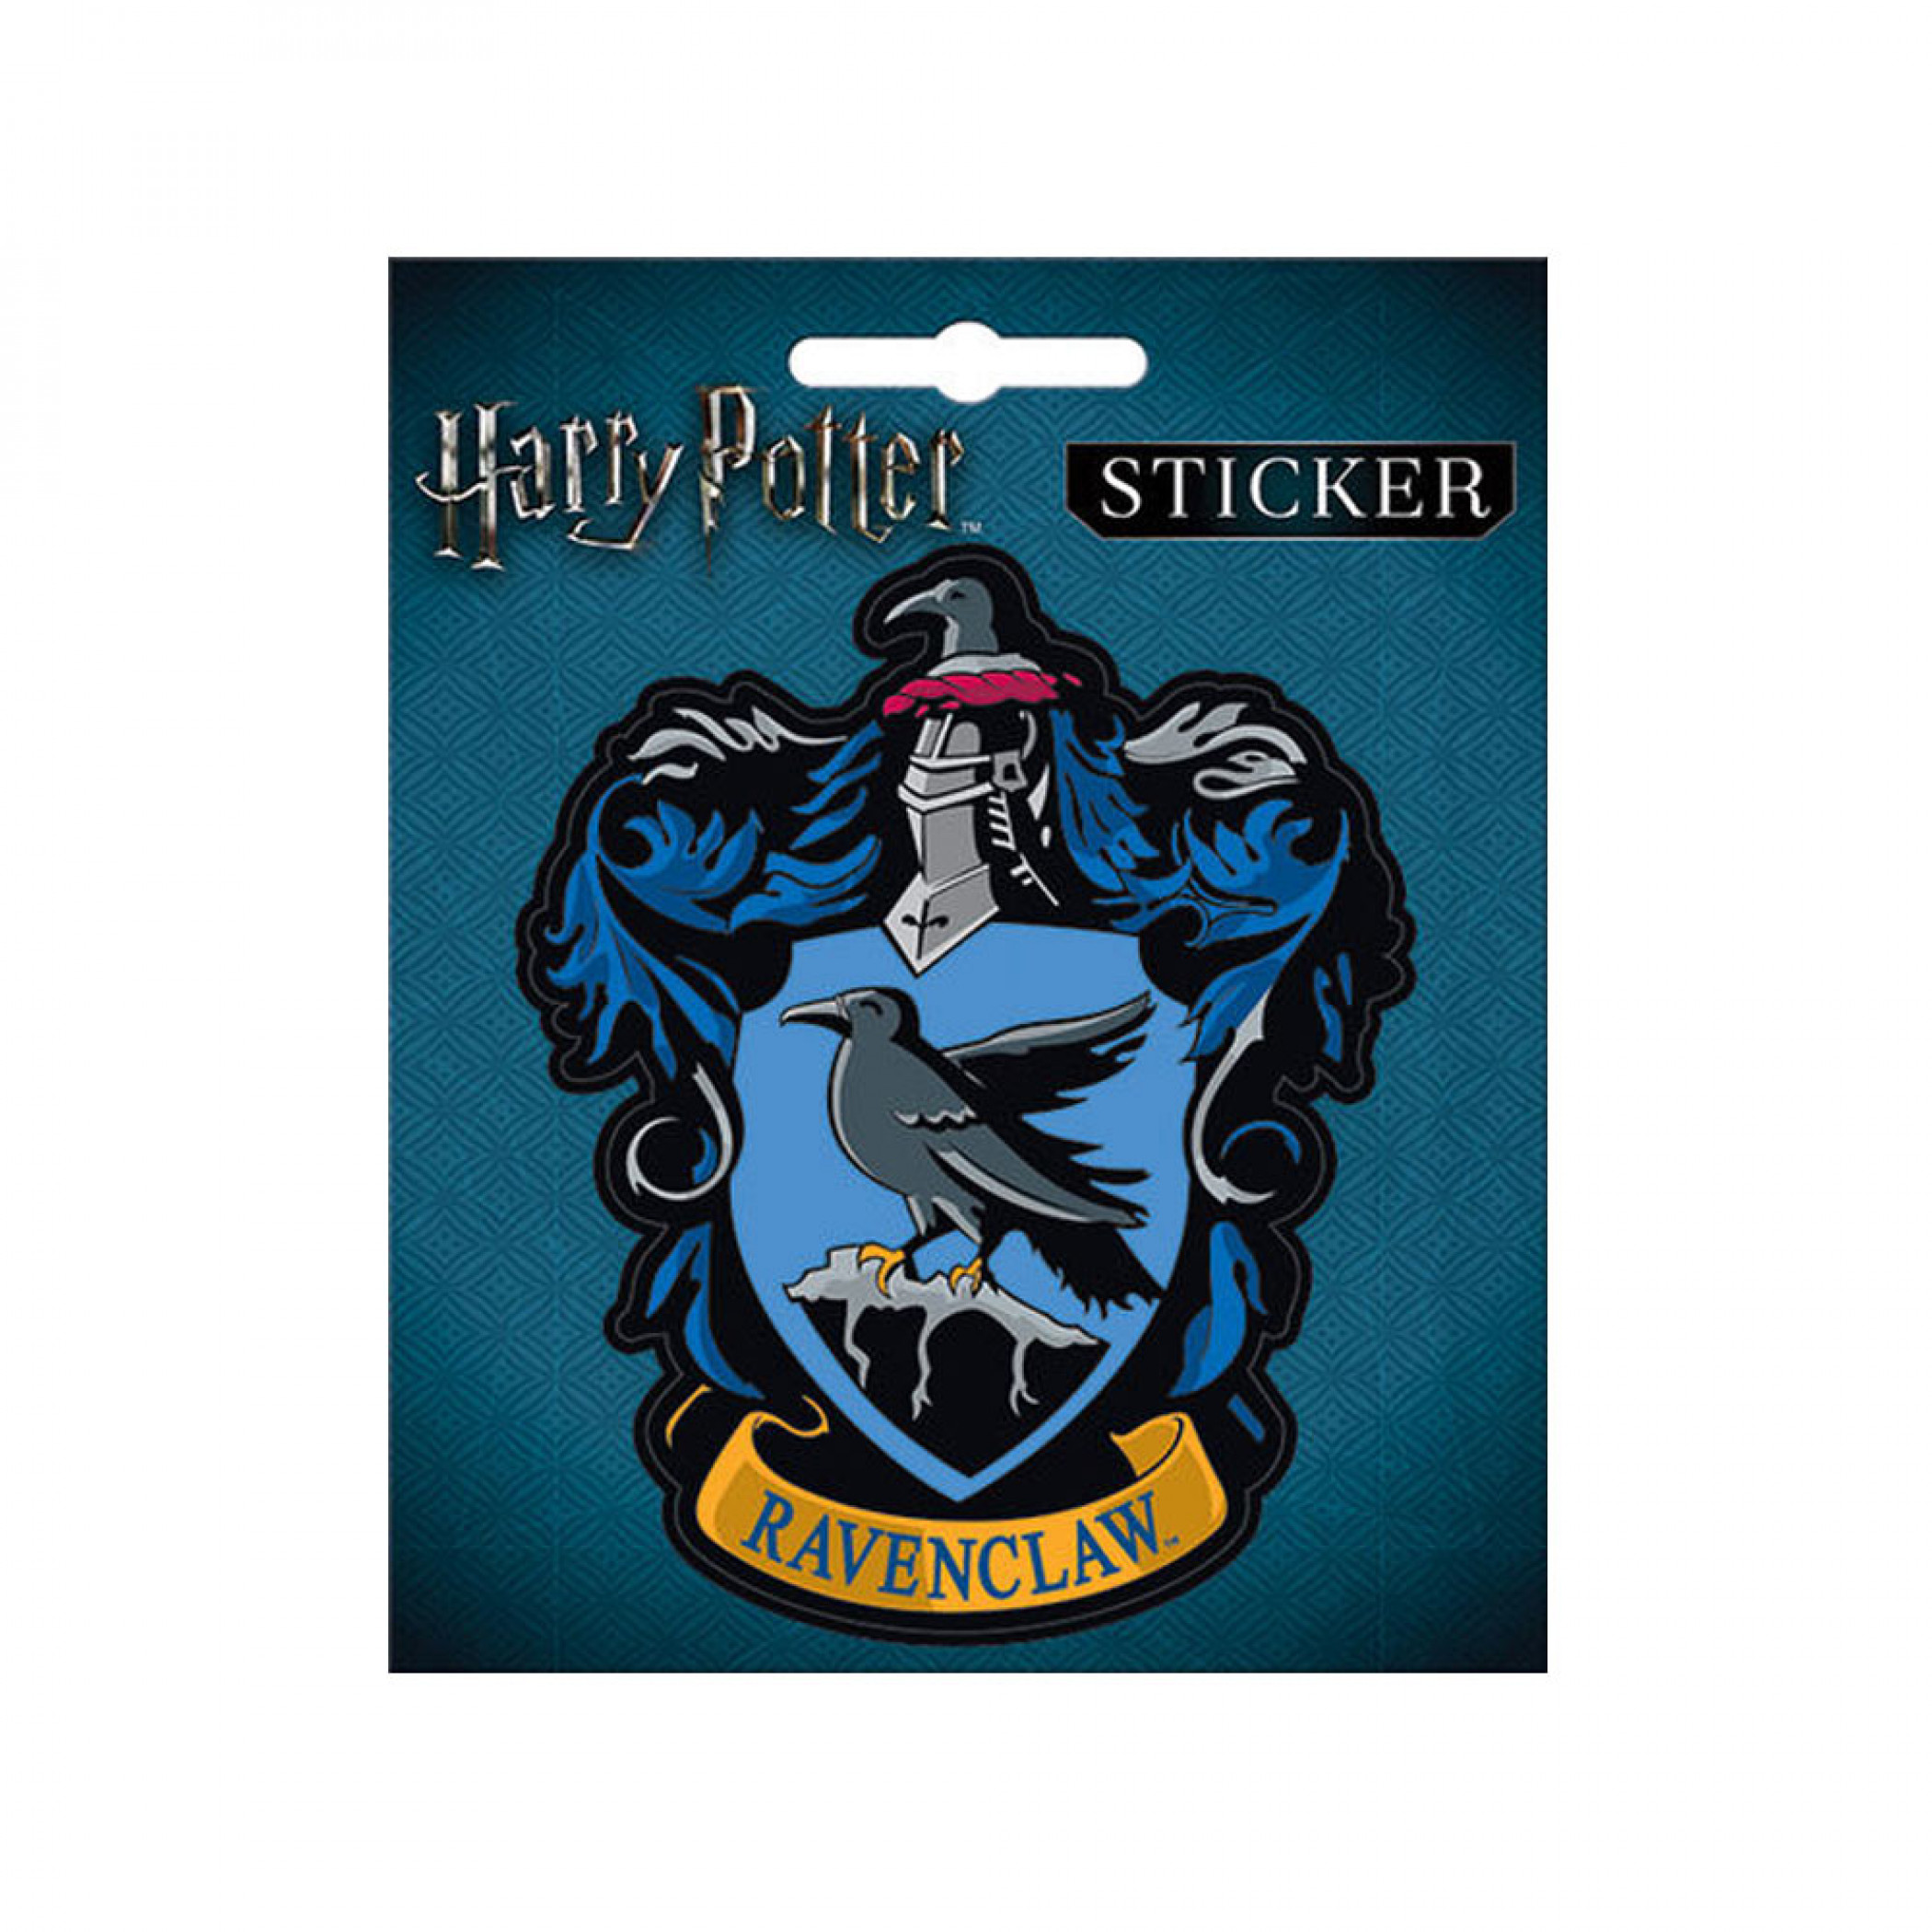 Harry Potter Ravenclaw Sticker